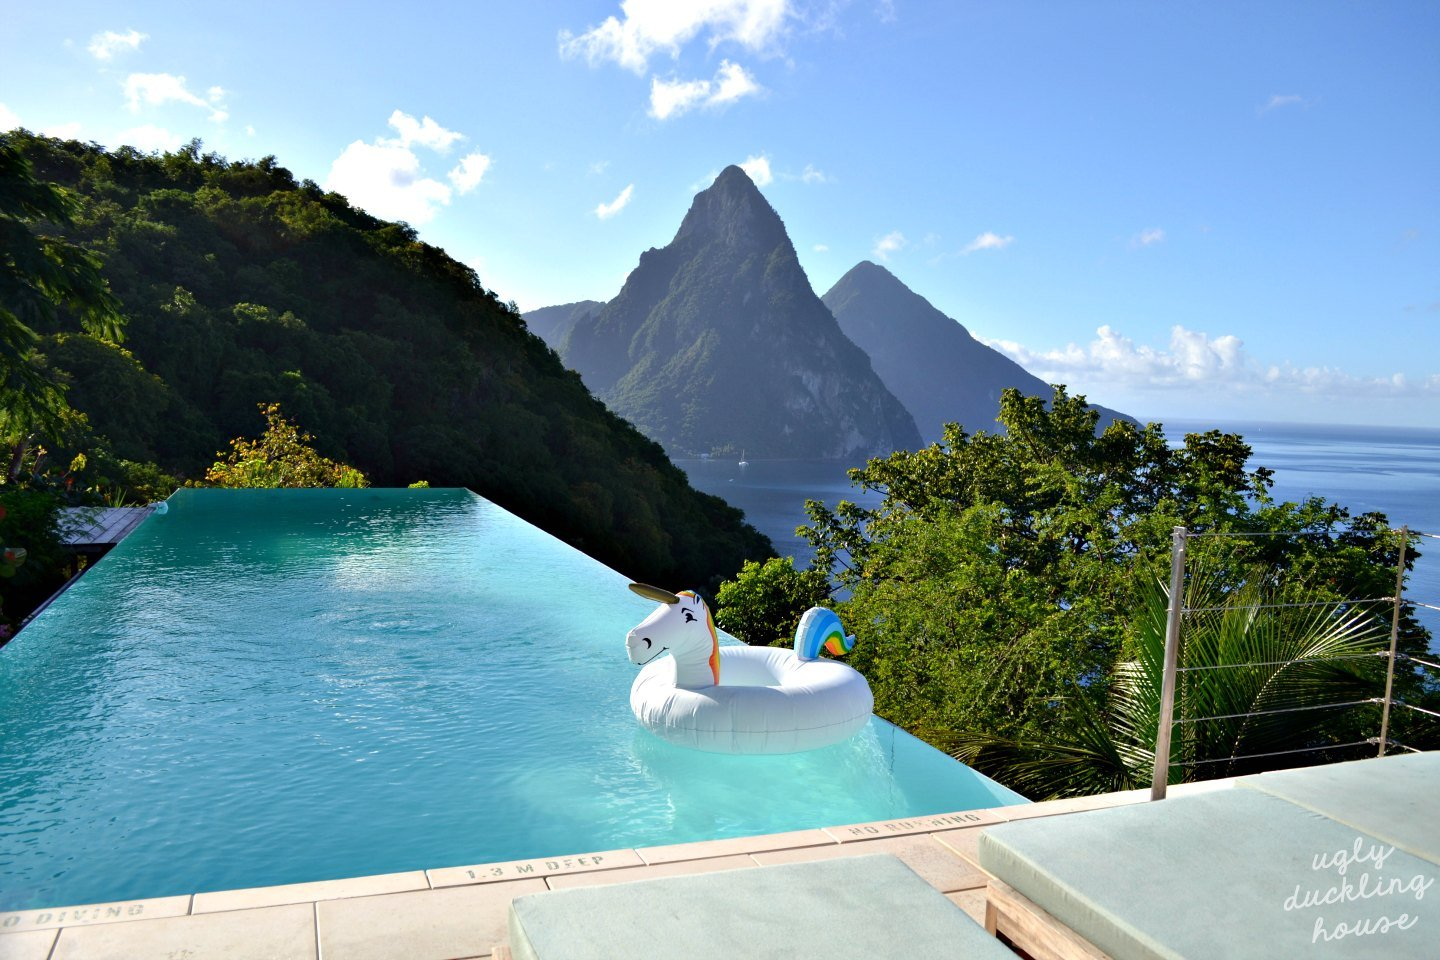 View in St Lucia - with unicorn float - ugly duckling house